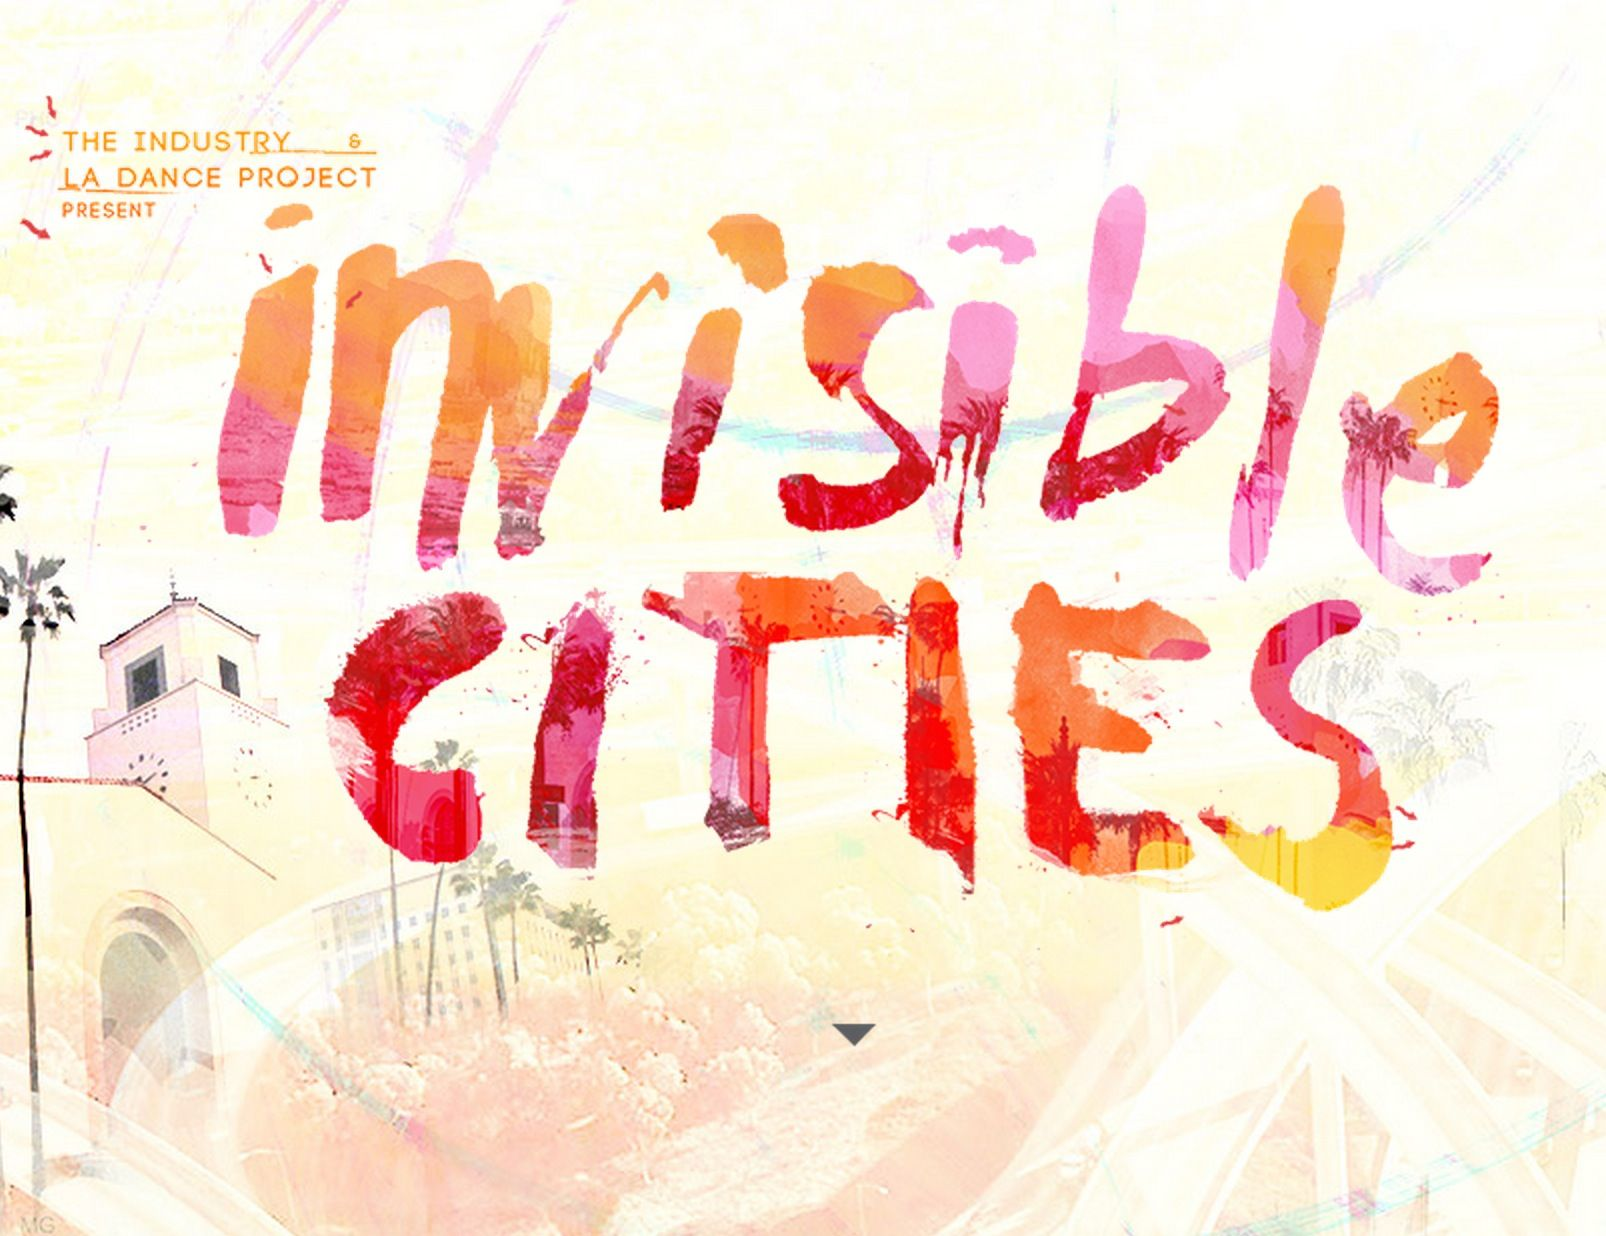 KCET's Artbound and The Industry Partner to Produce Multimedia Series Behind Experimental Opera INVISIBLE CITIES http://www.kcet.org/arts/artbound/counties/los-angeles/yuval-sharon-union-station-invisible-cities.html